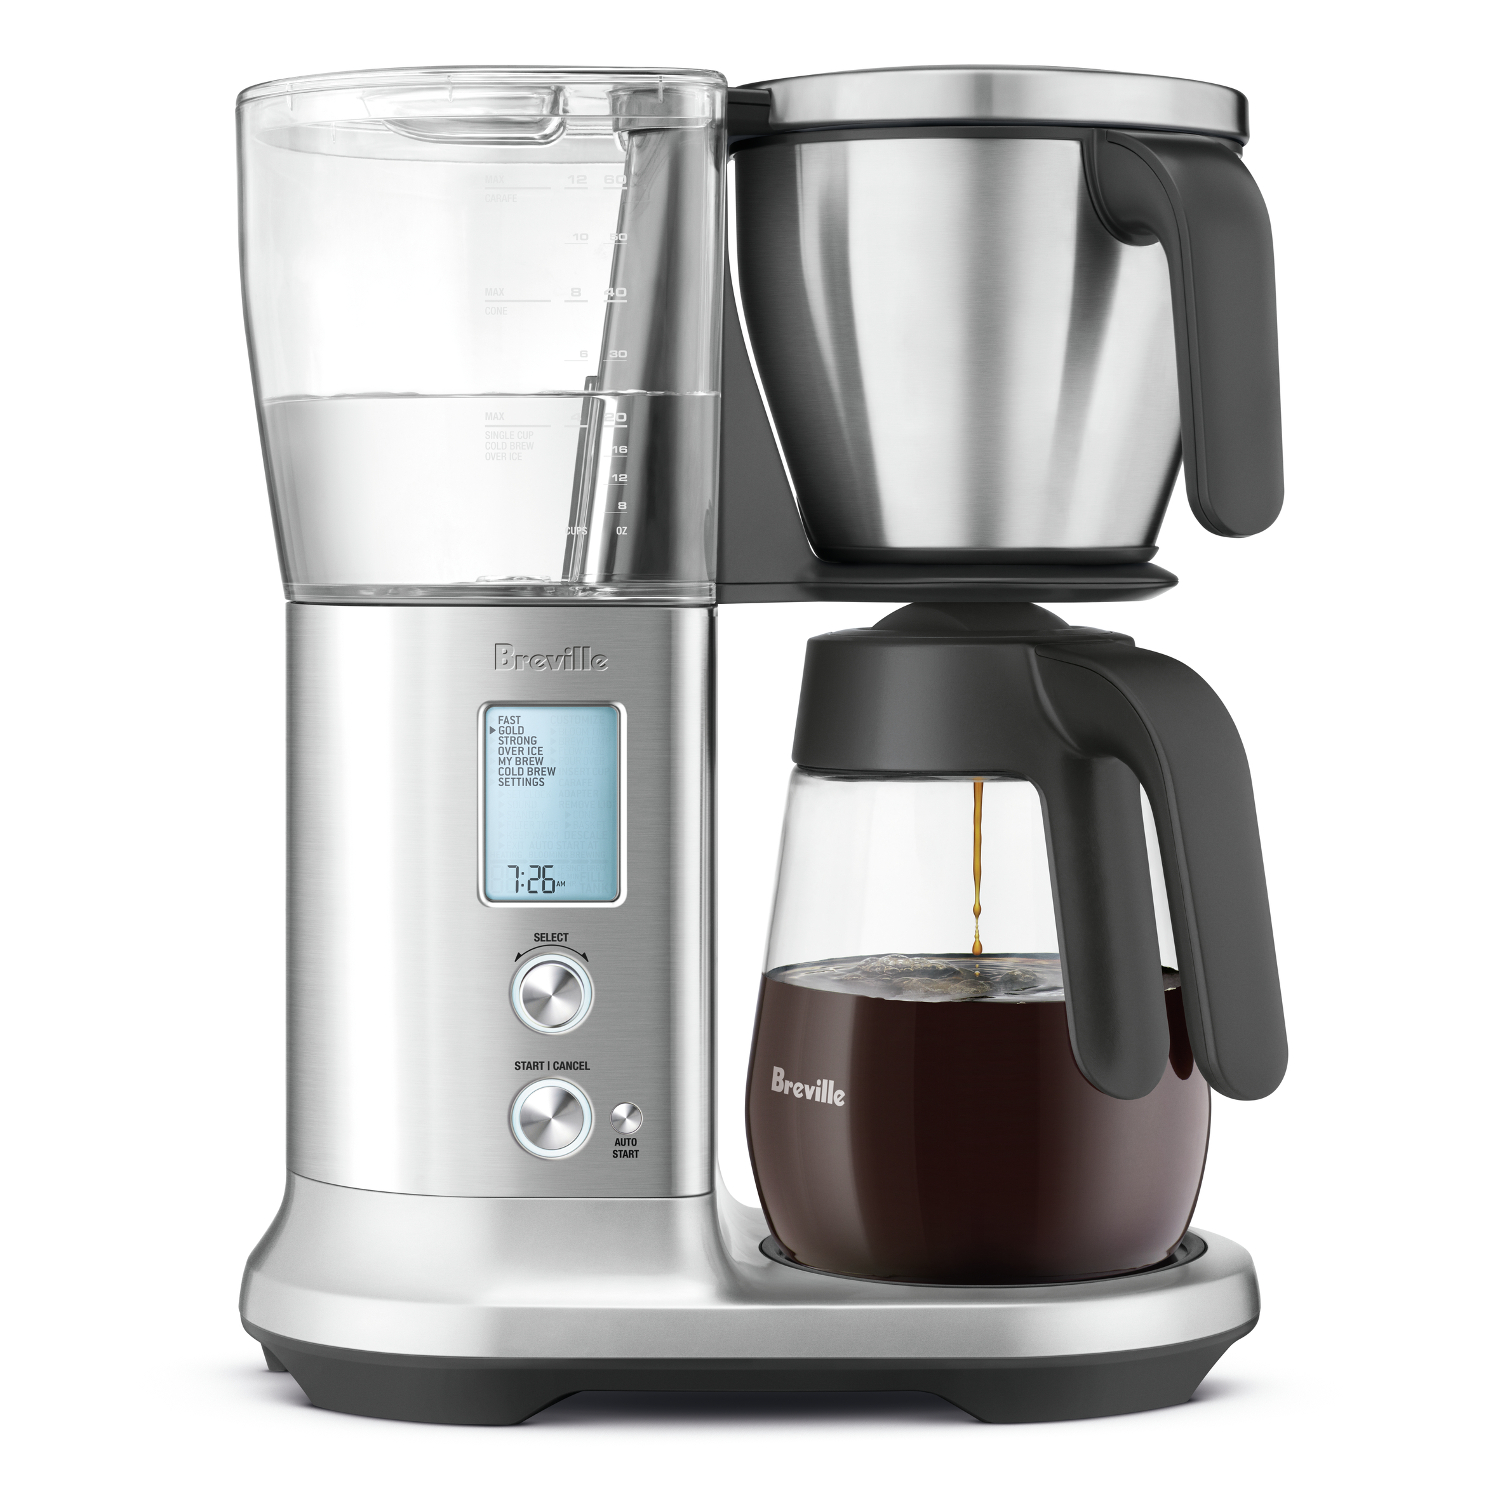 Breville Precision Brewer Glass and Stainless Steel 12 Cup Drip Coffee Maker